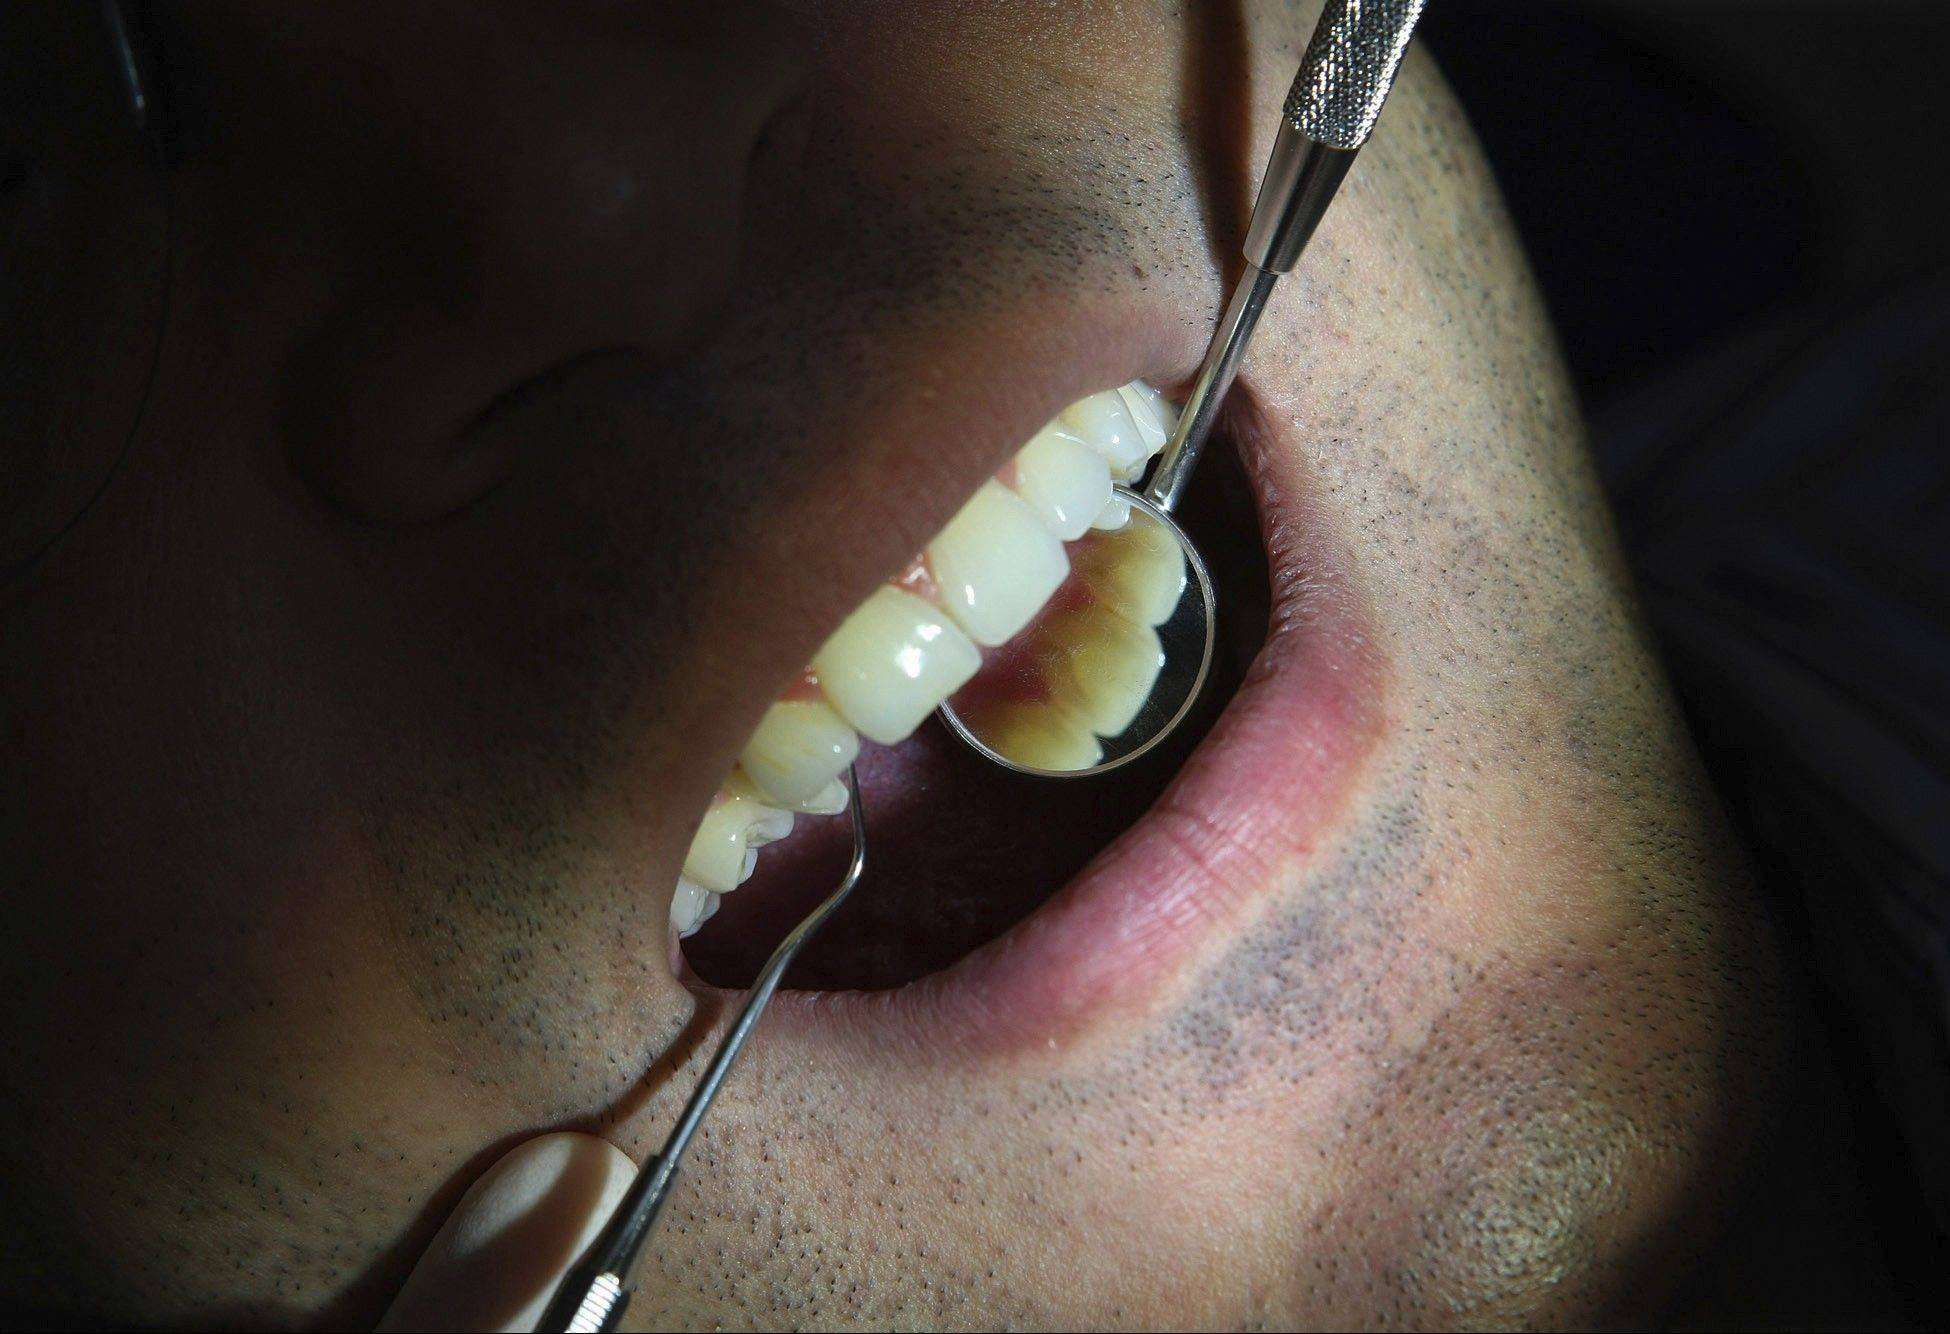 New research has explored the link between dental health and diseases in the body.